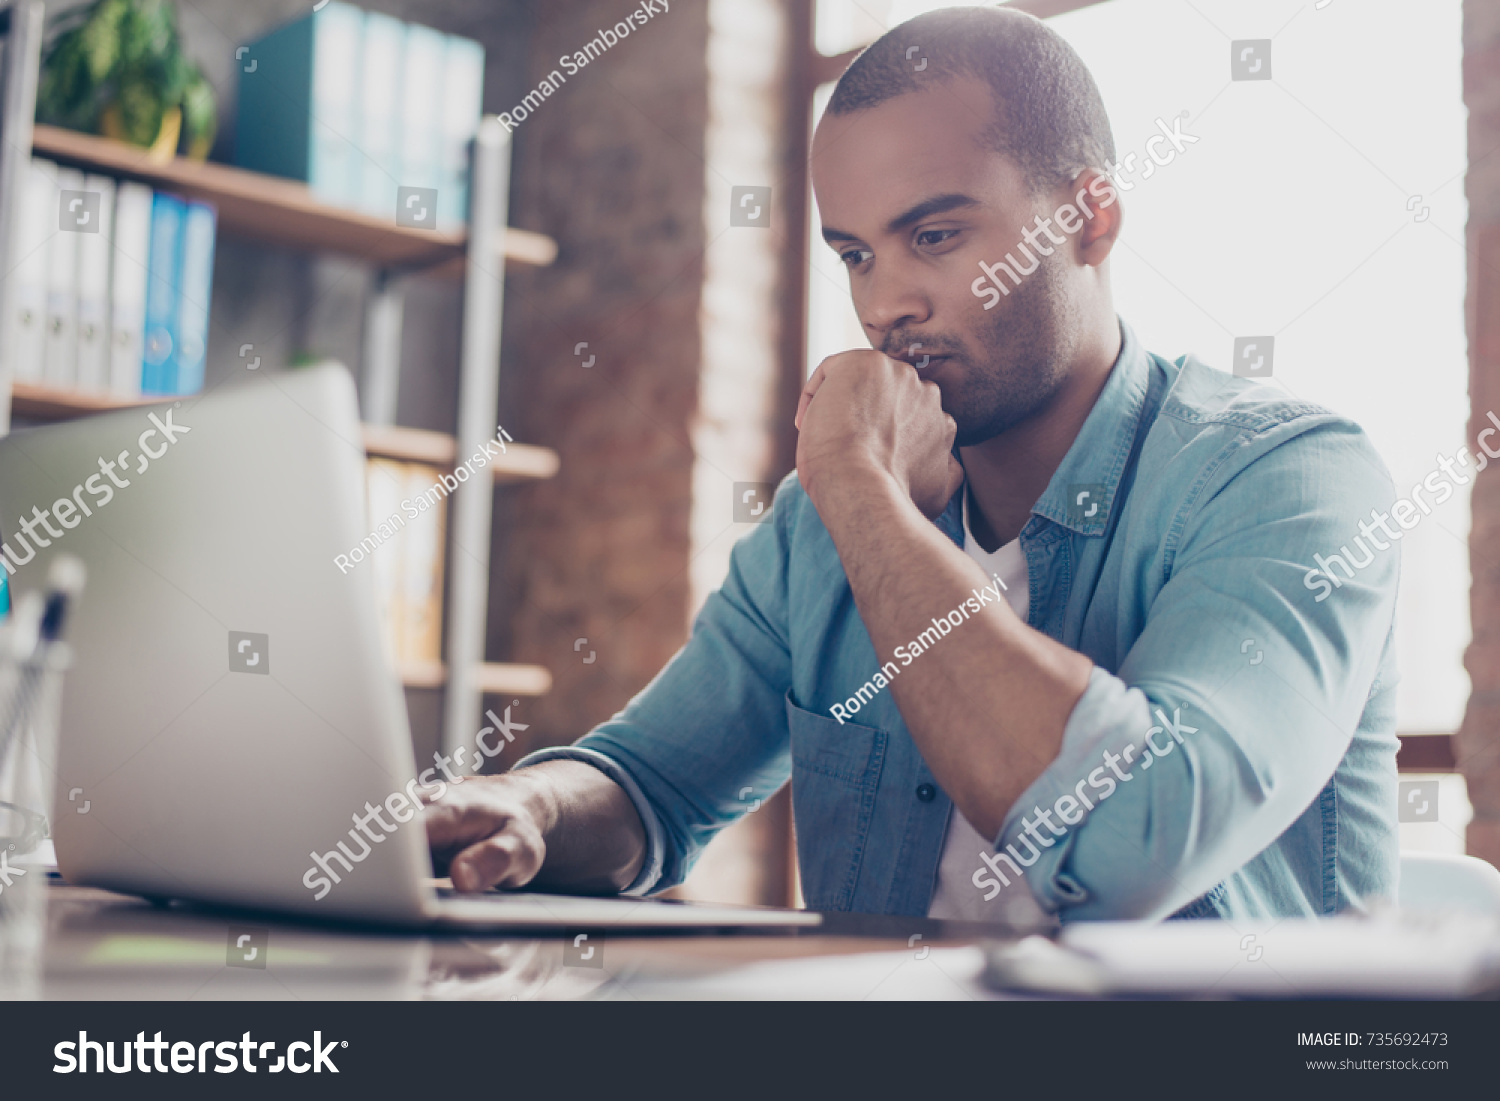 Skeptic Young Afro Freelancer Making Decision Stock Photo